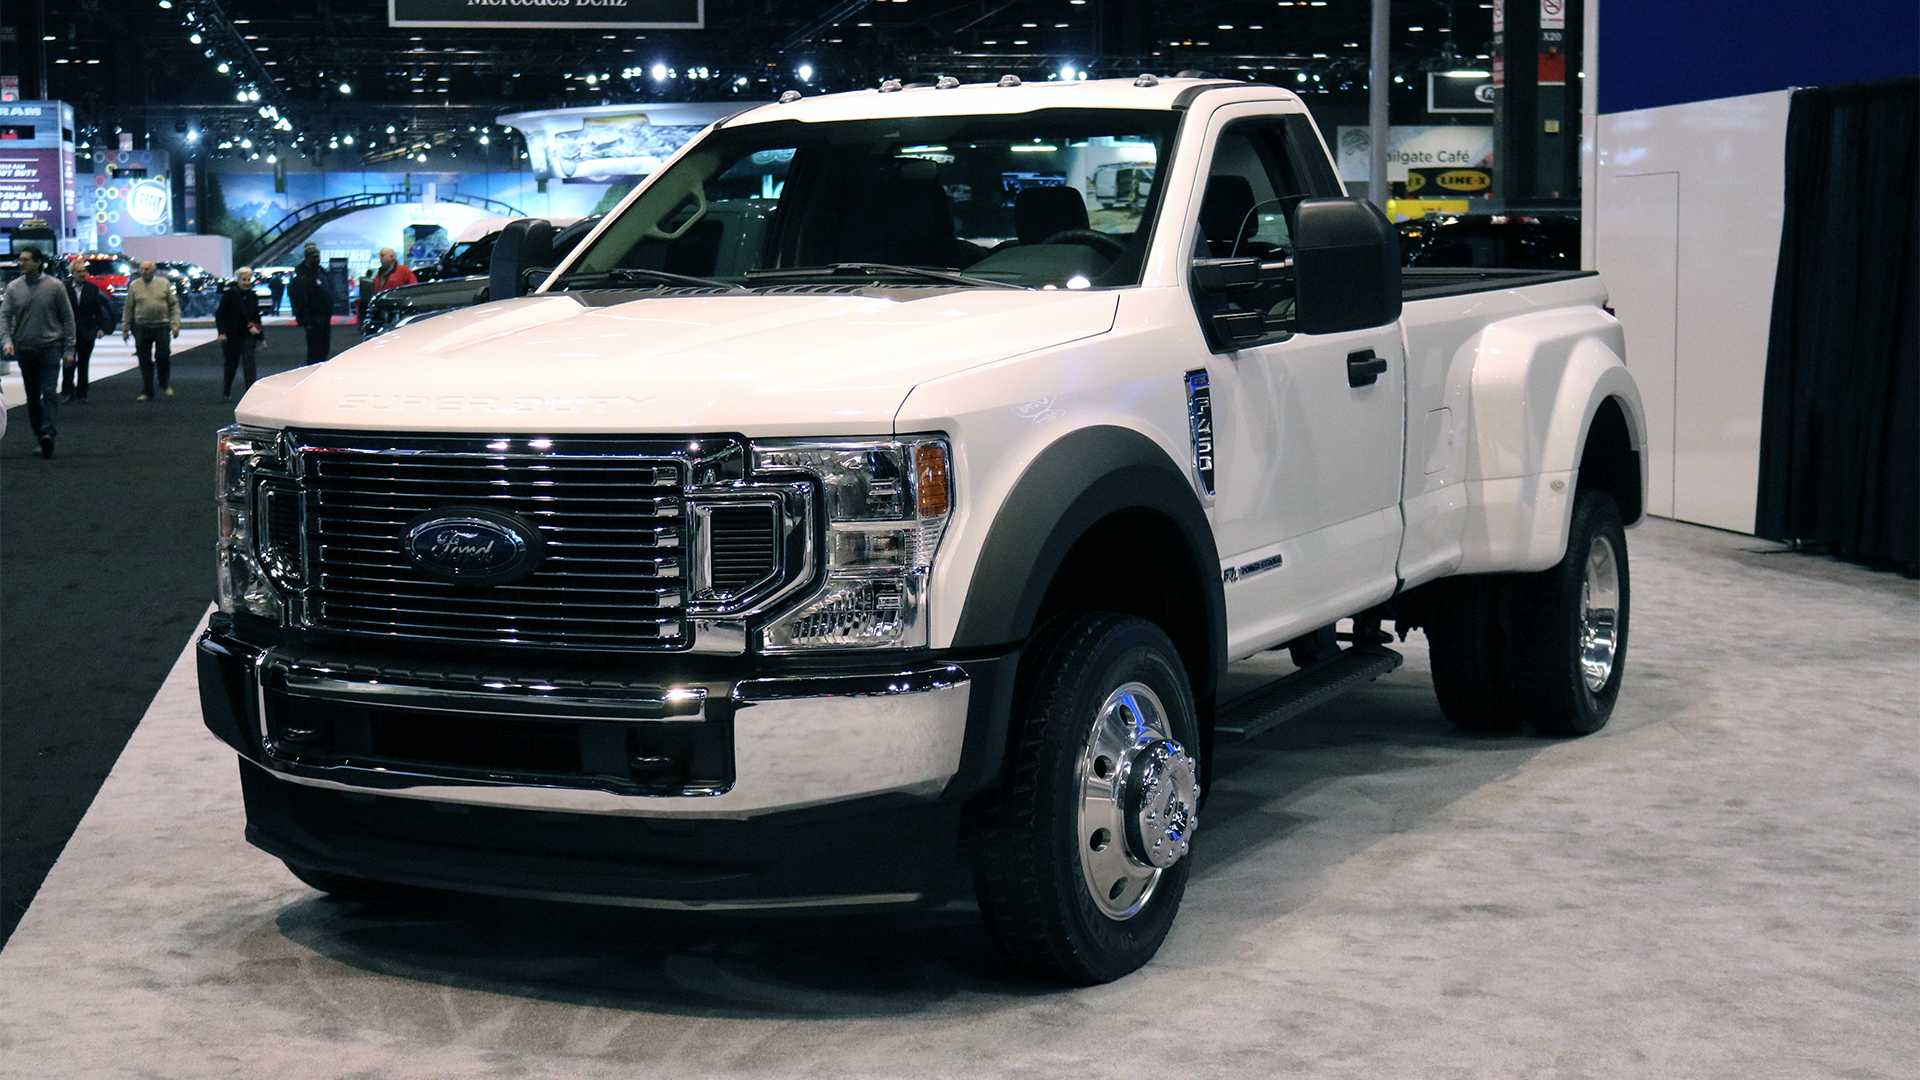 2020 Ford Super Duty Powers Into Chicago With 7 3-Liter V8 [UPDATE]